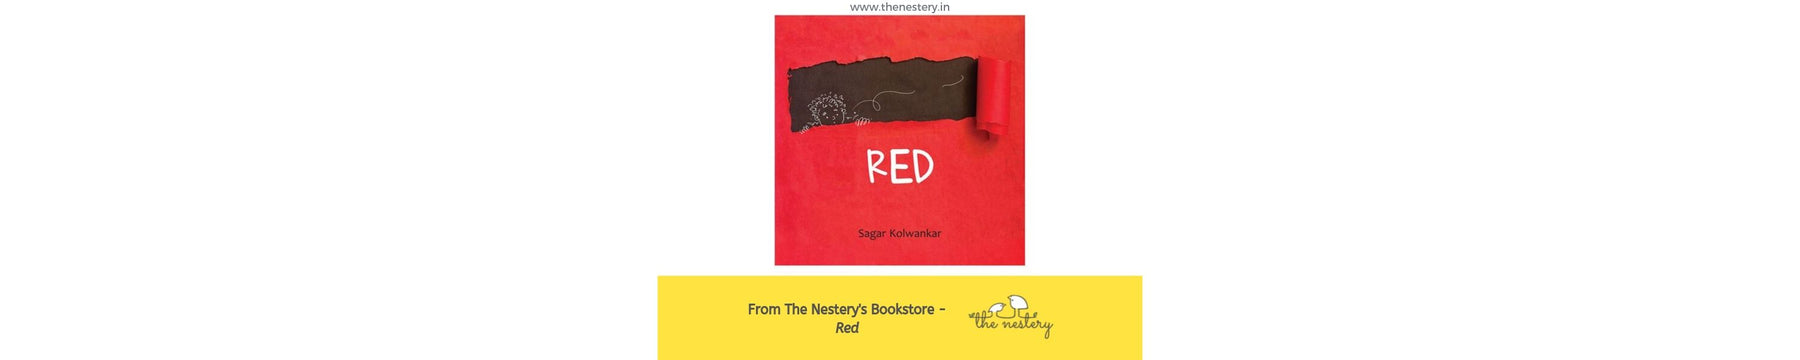 Book Review - Red